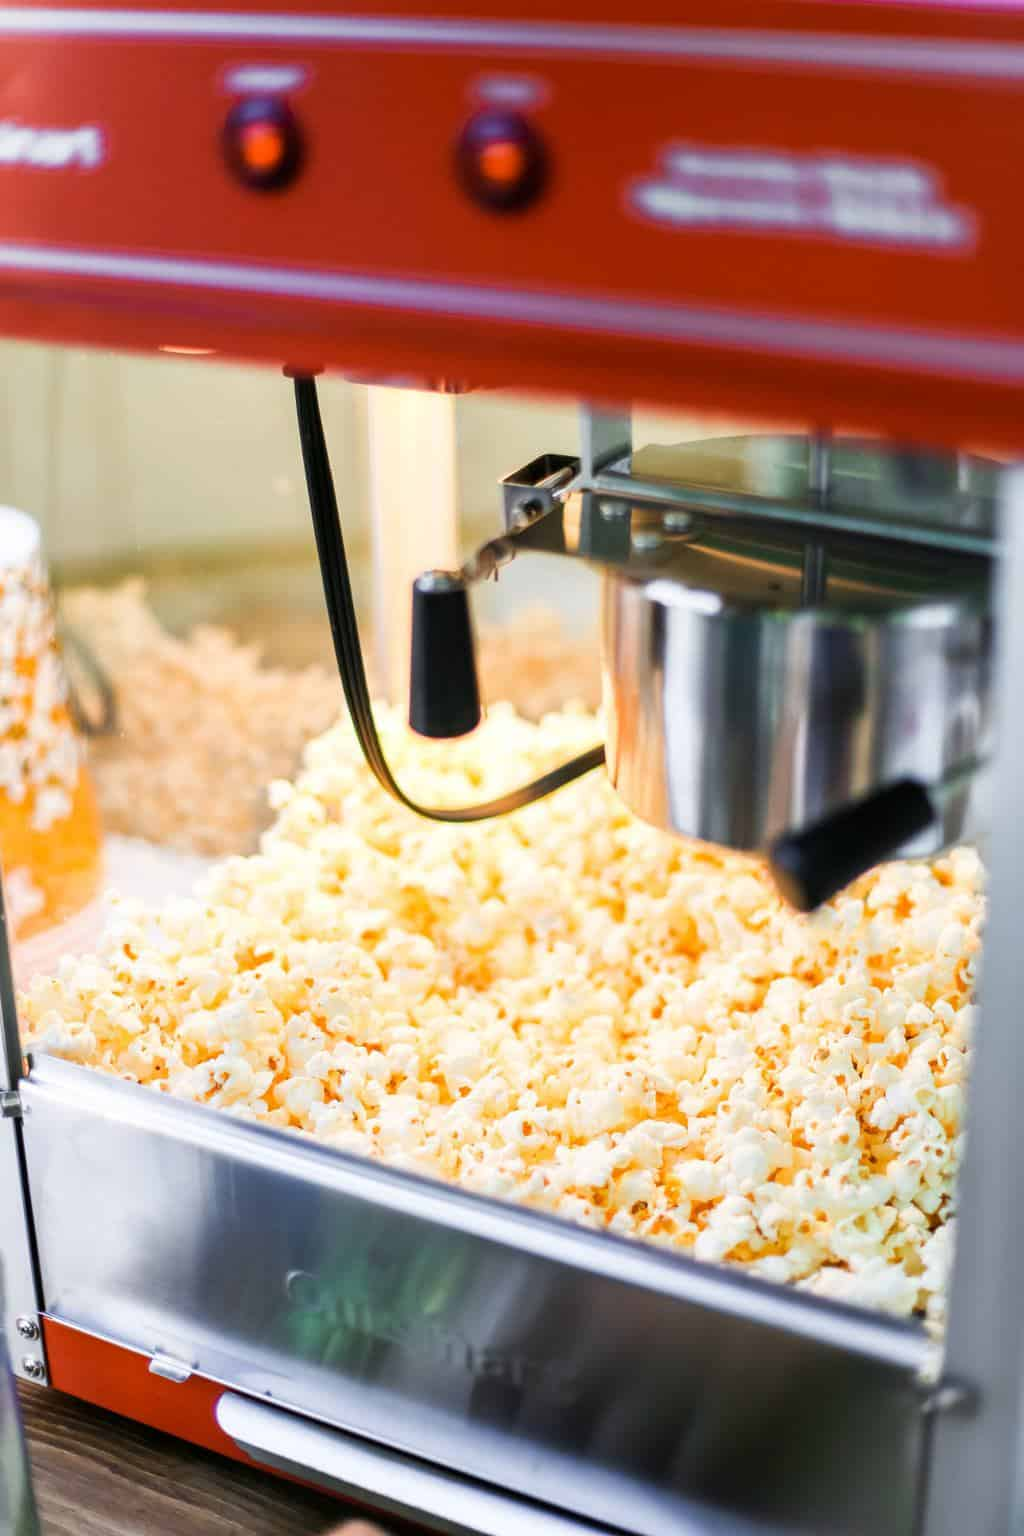 A classic popcorn maker popping popcorn.